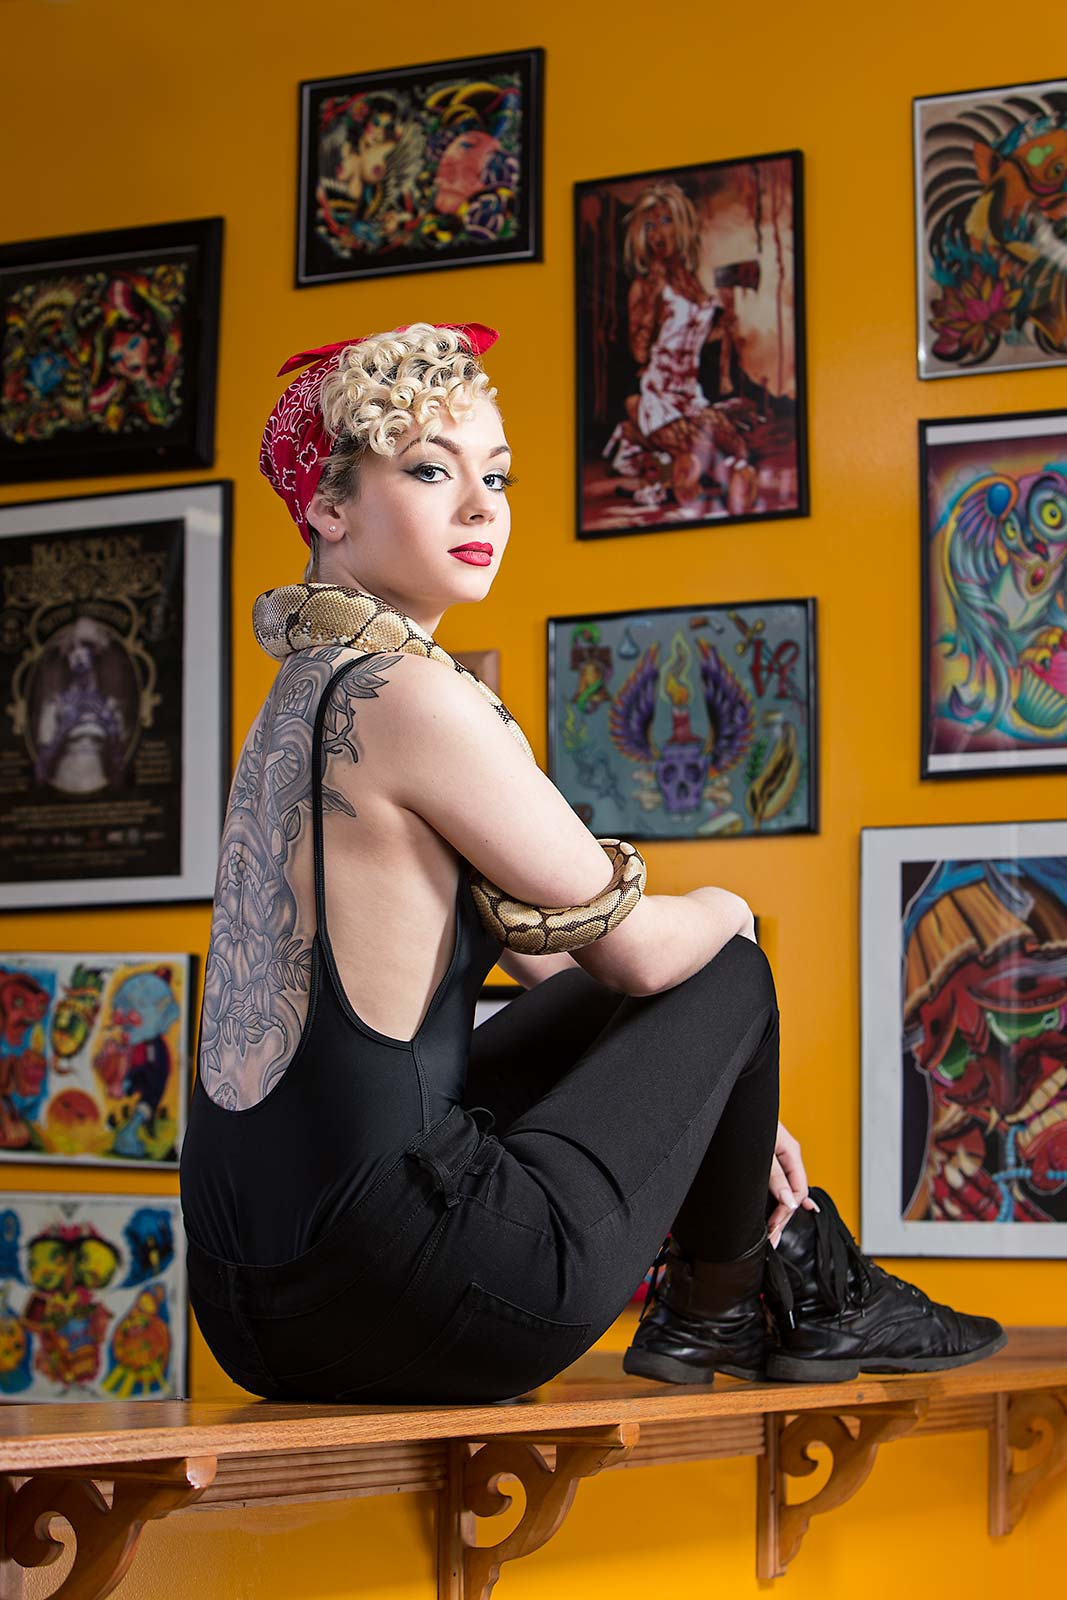 A young woman shows off her tattoos at a tattoo studio in Massachusetts